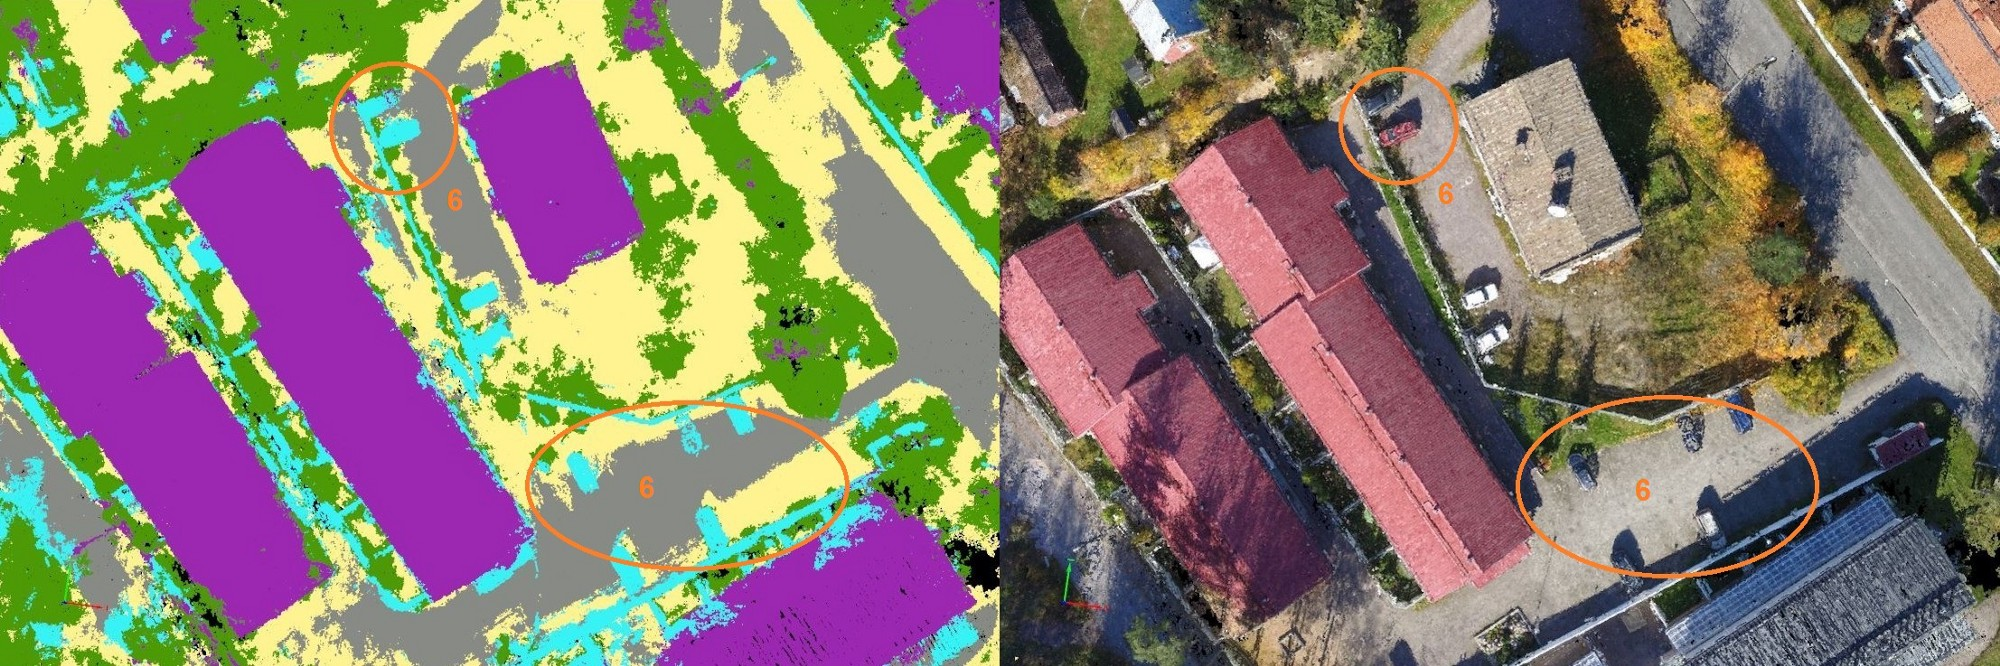 Machine learning and photogrammetry combined in one software